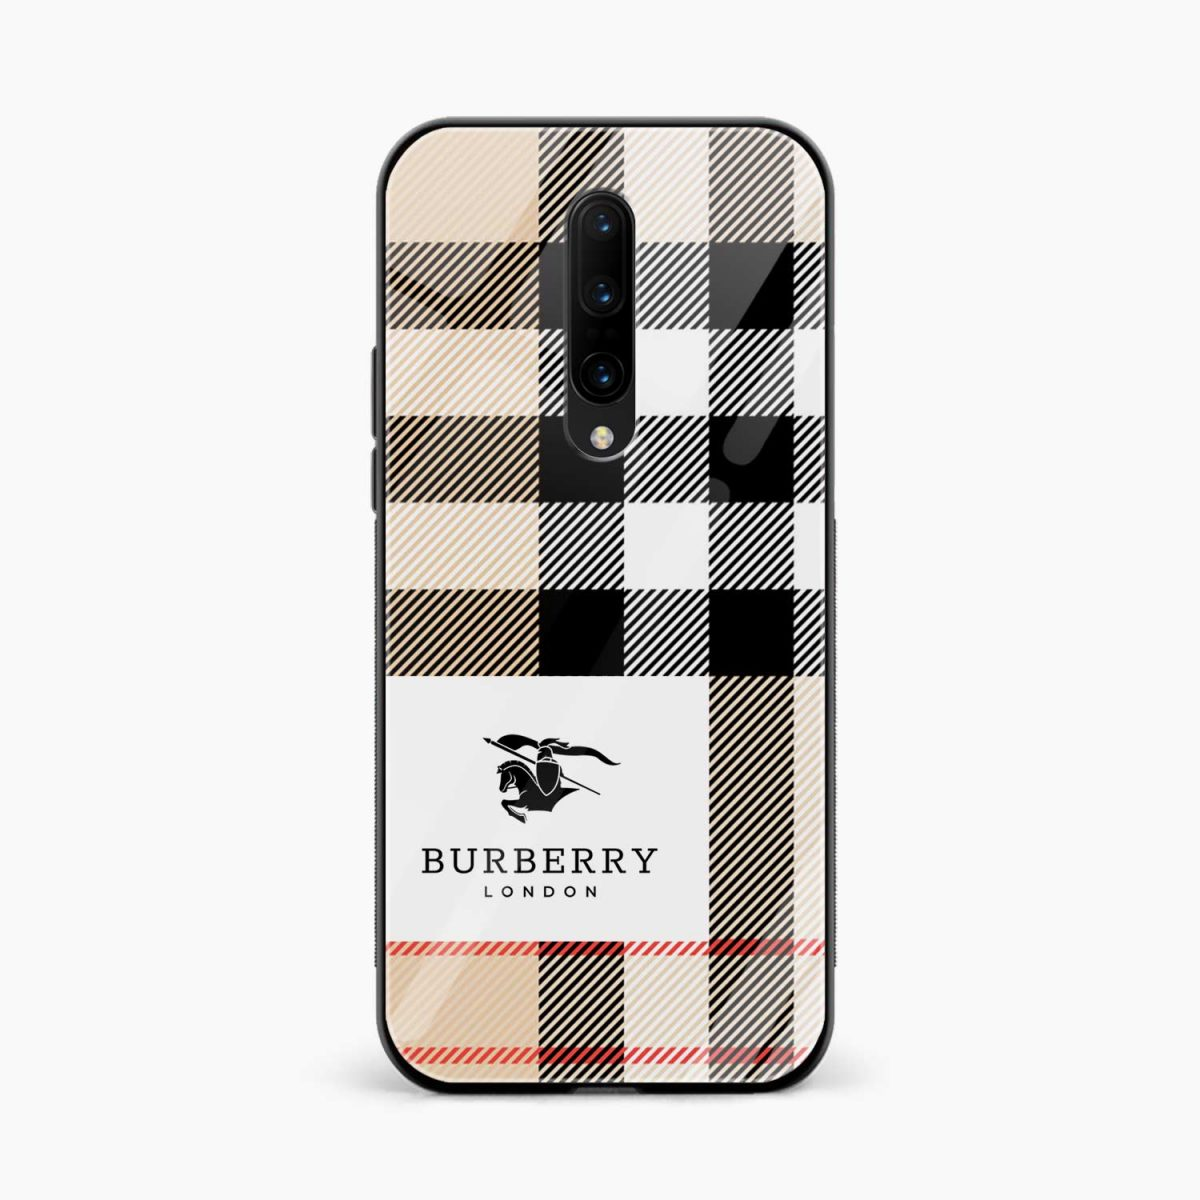 burberry cross lines pattern front view oneplus 7 pro back cover